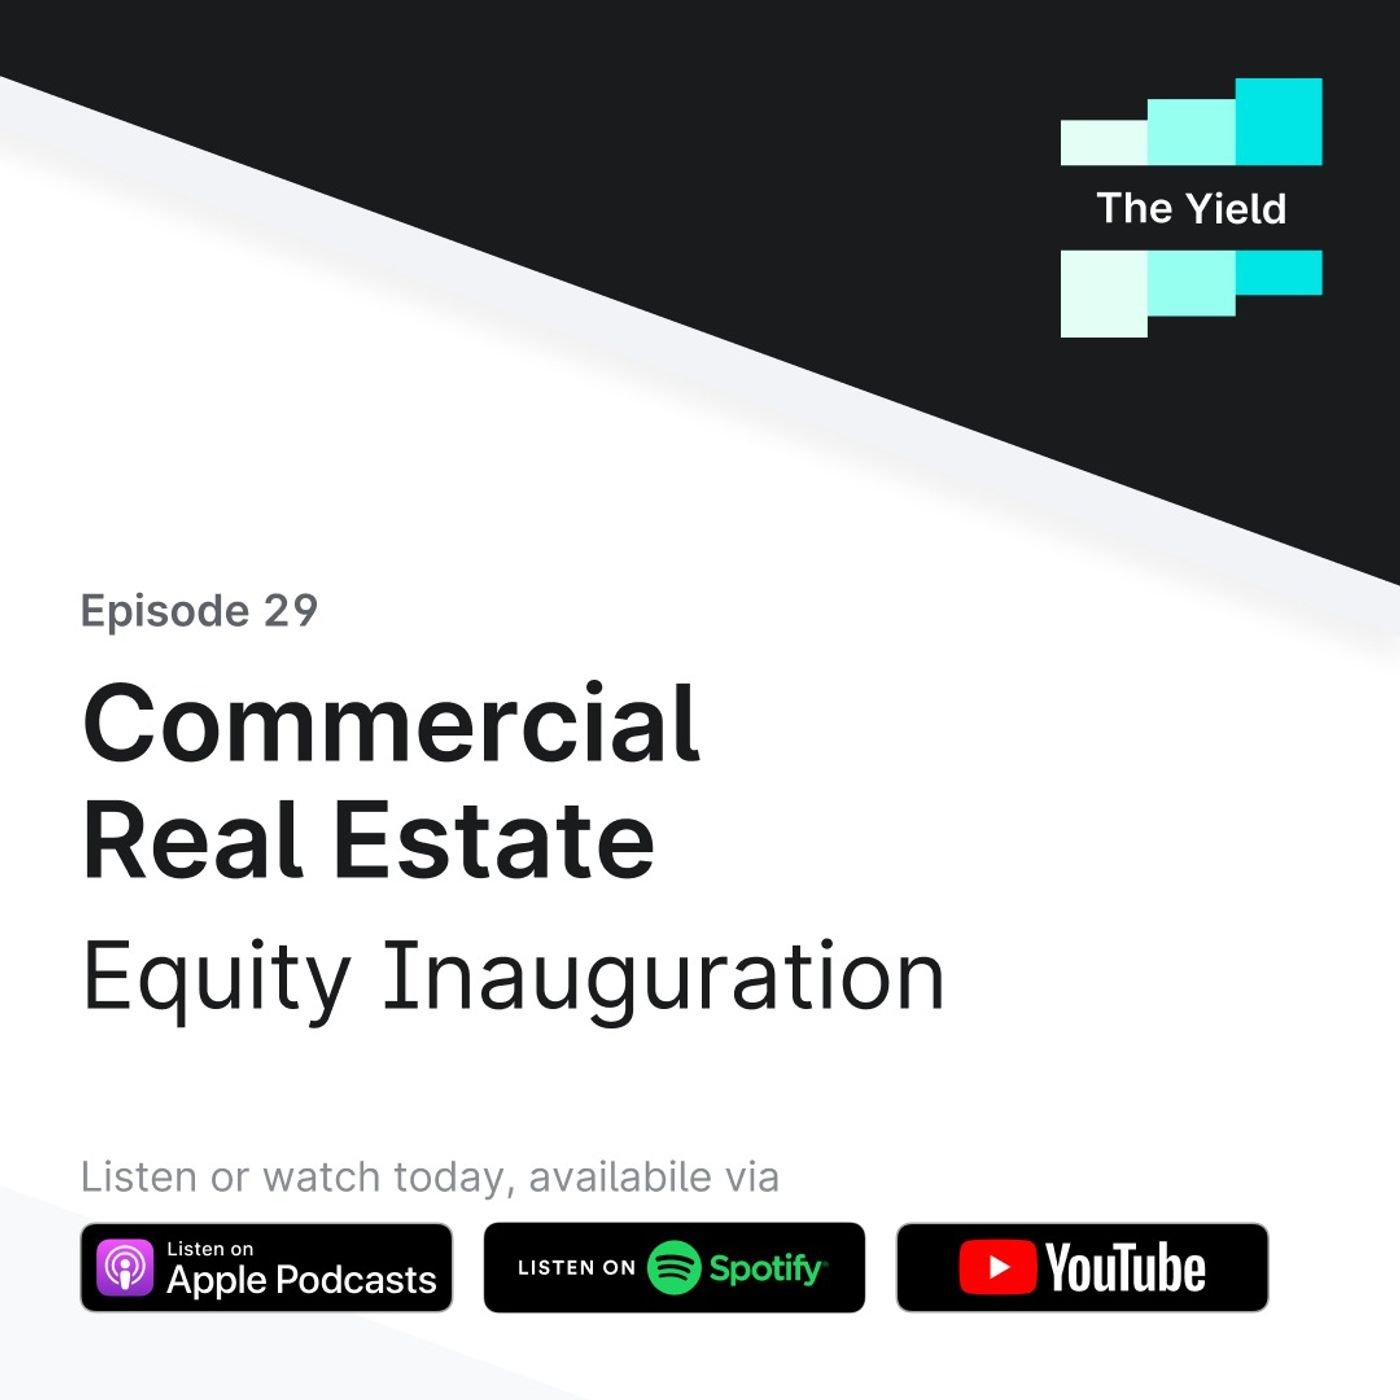 Commercial Real Estate: Equity Inauguration